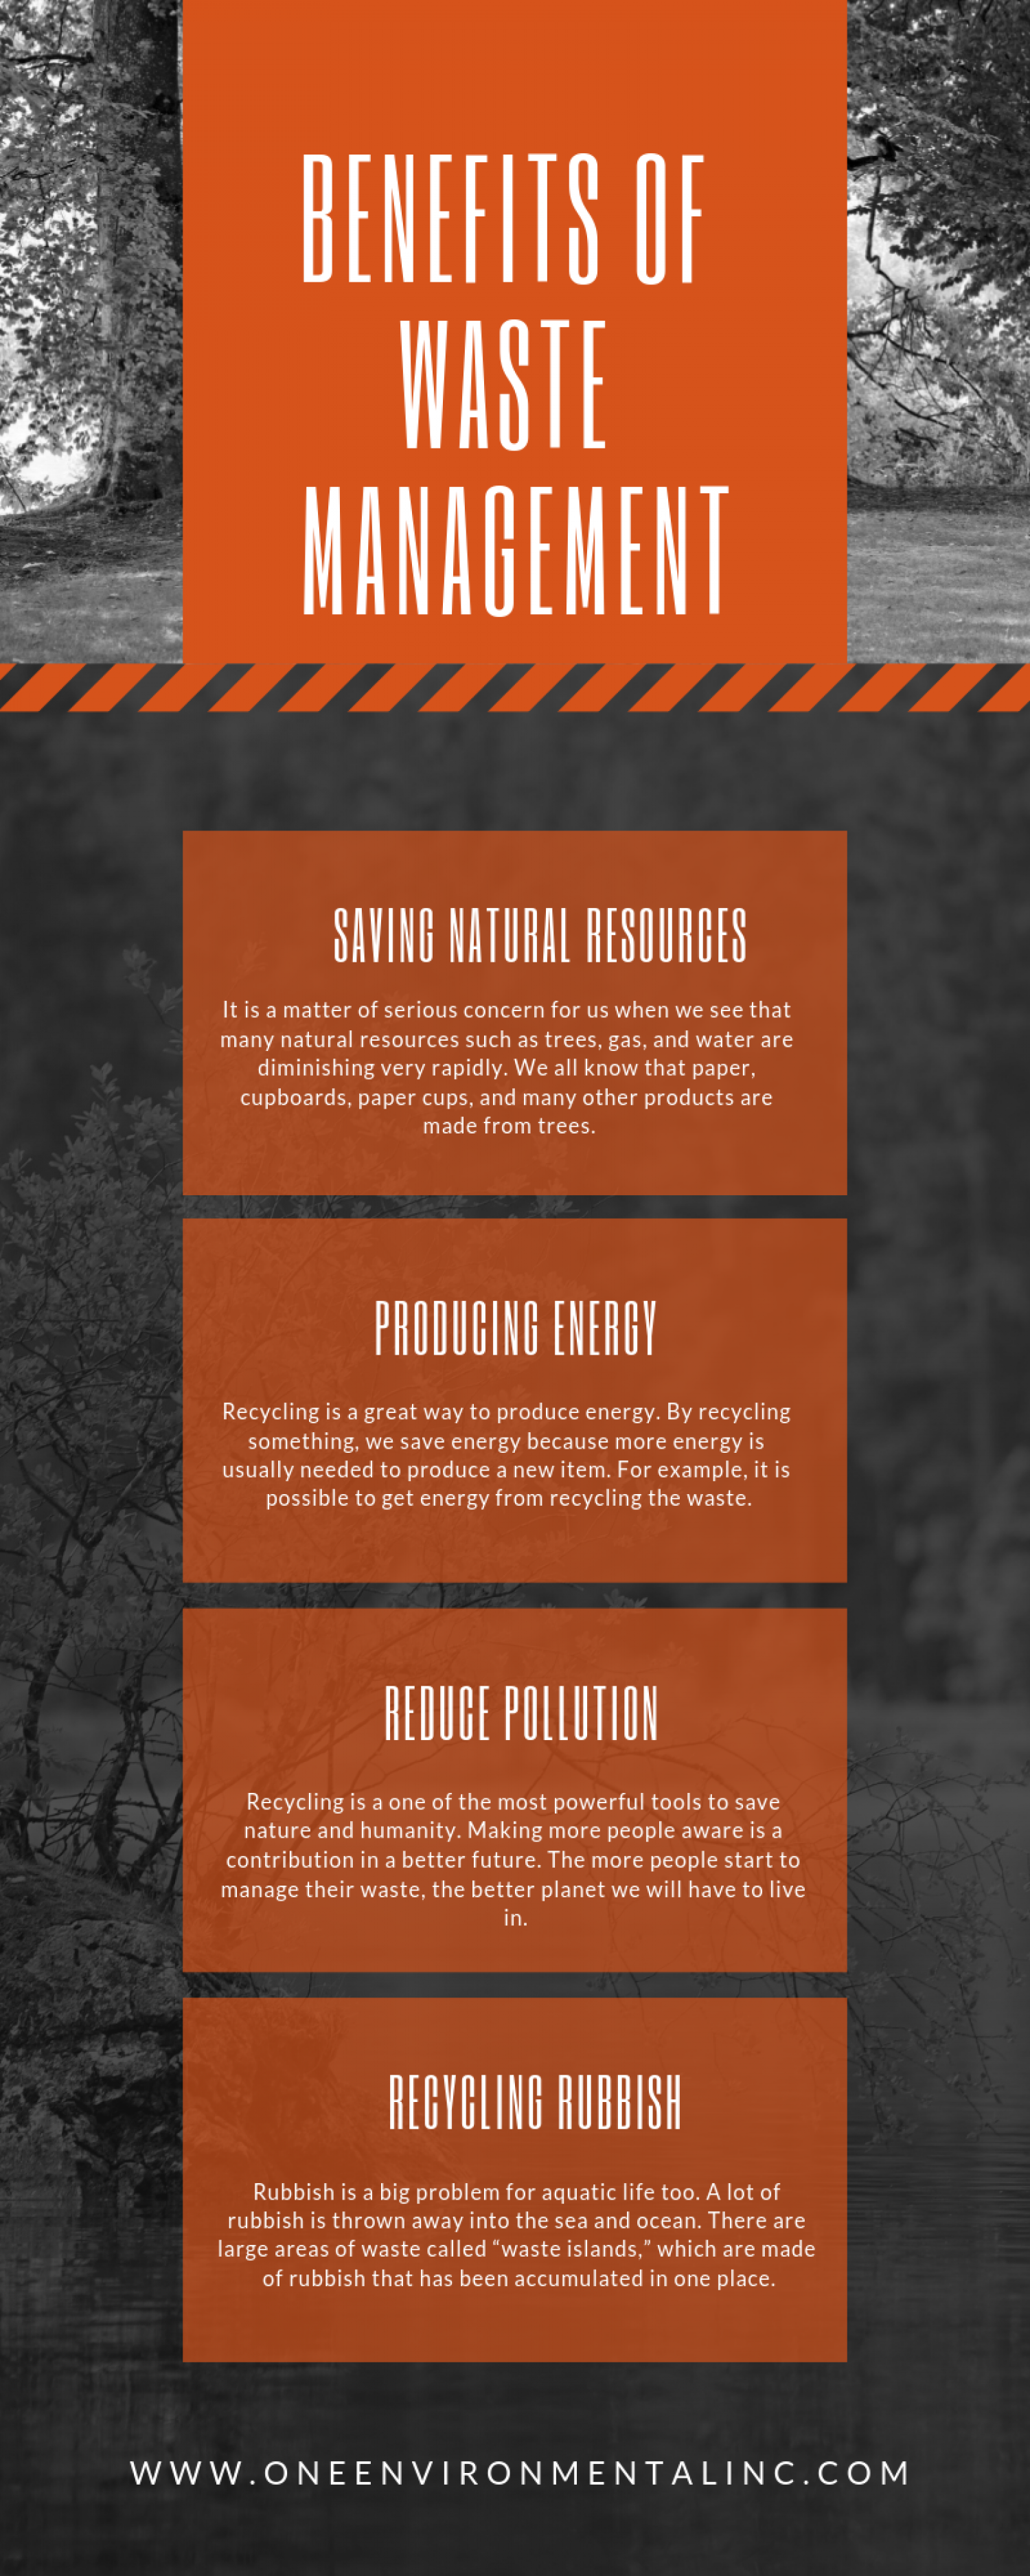 Benefits Of Waste Management Infographic